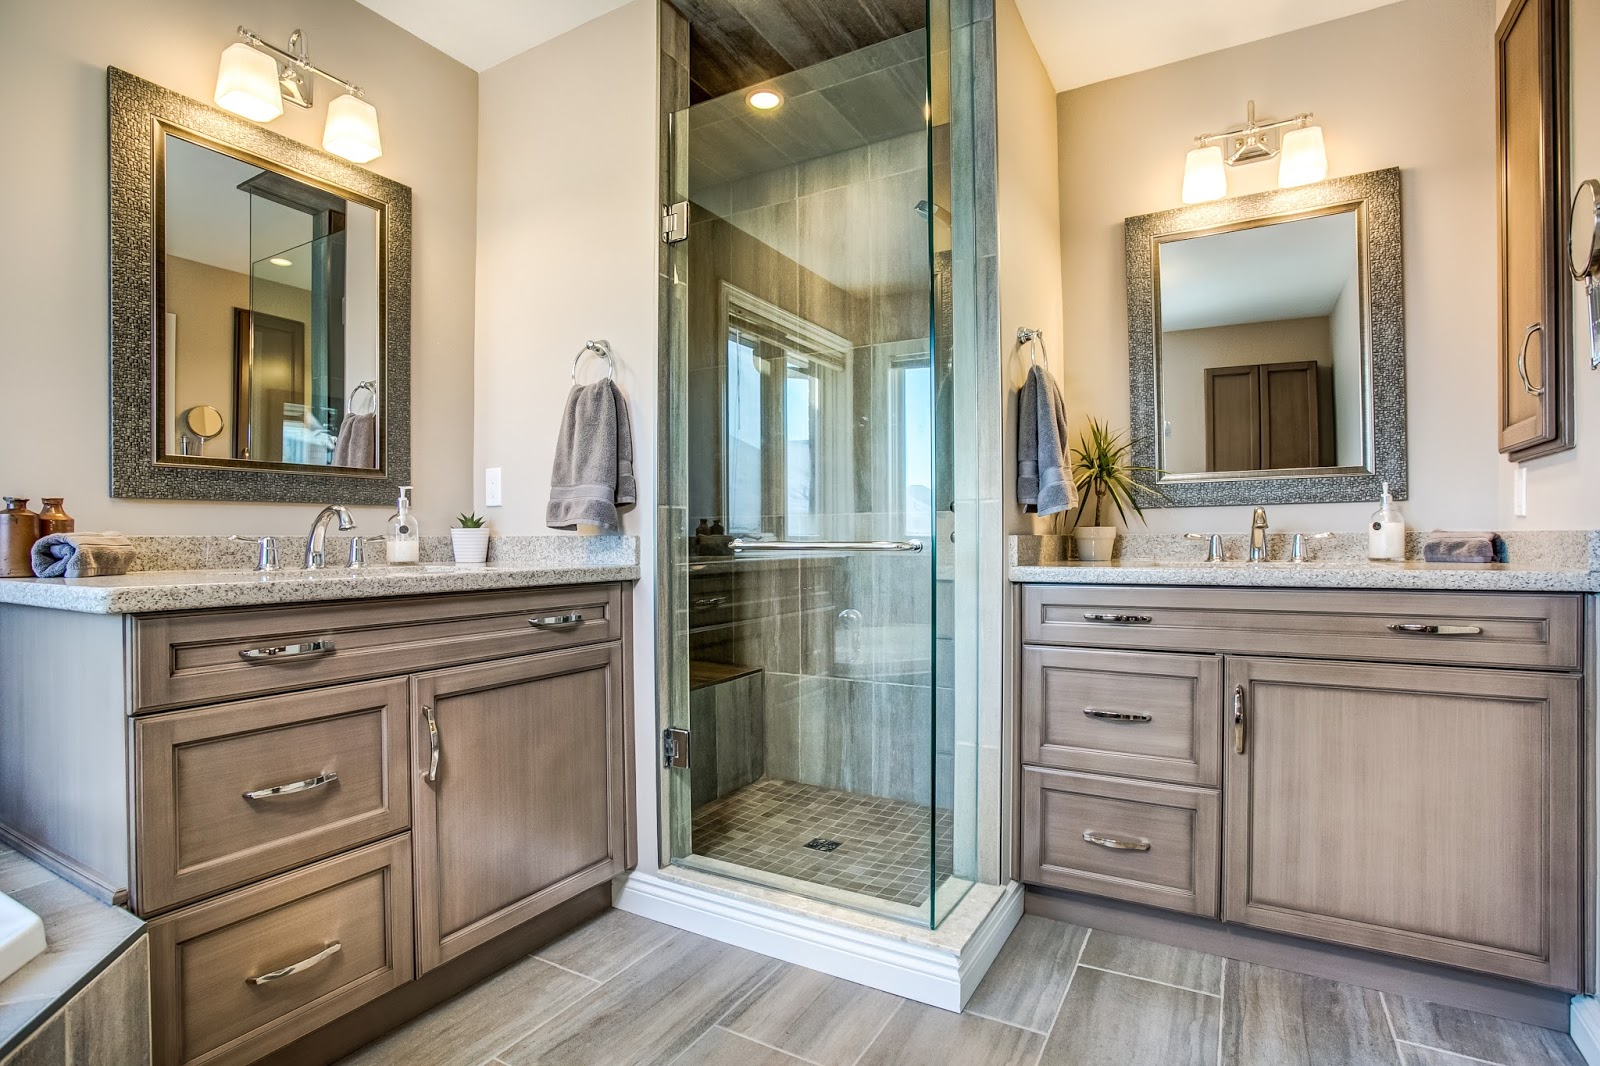 Bathroom Remodel Cost 2017 2018 Budget Average Luxury Home Electrical Wiring New Remodels Additions As You Wish Spacious